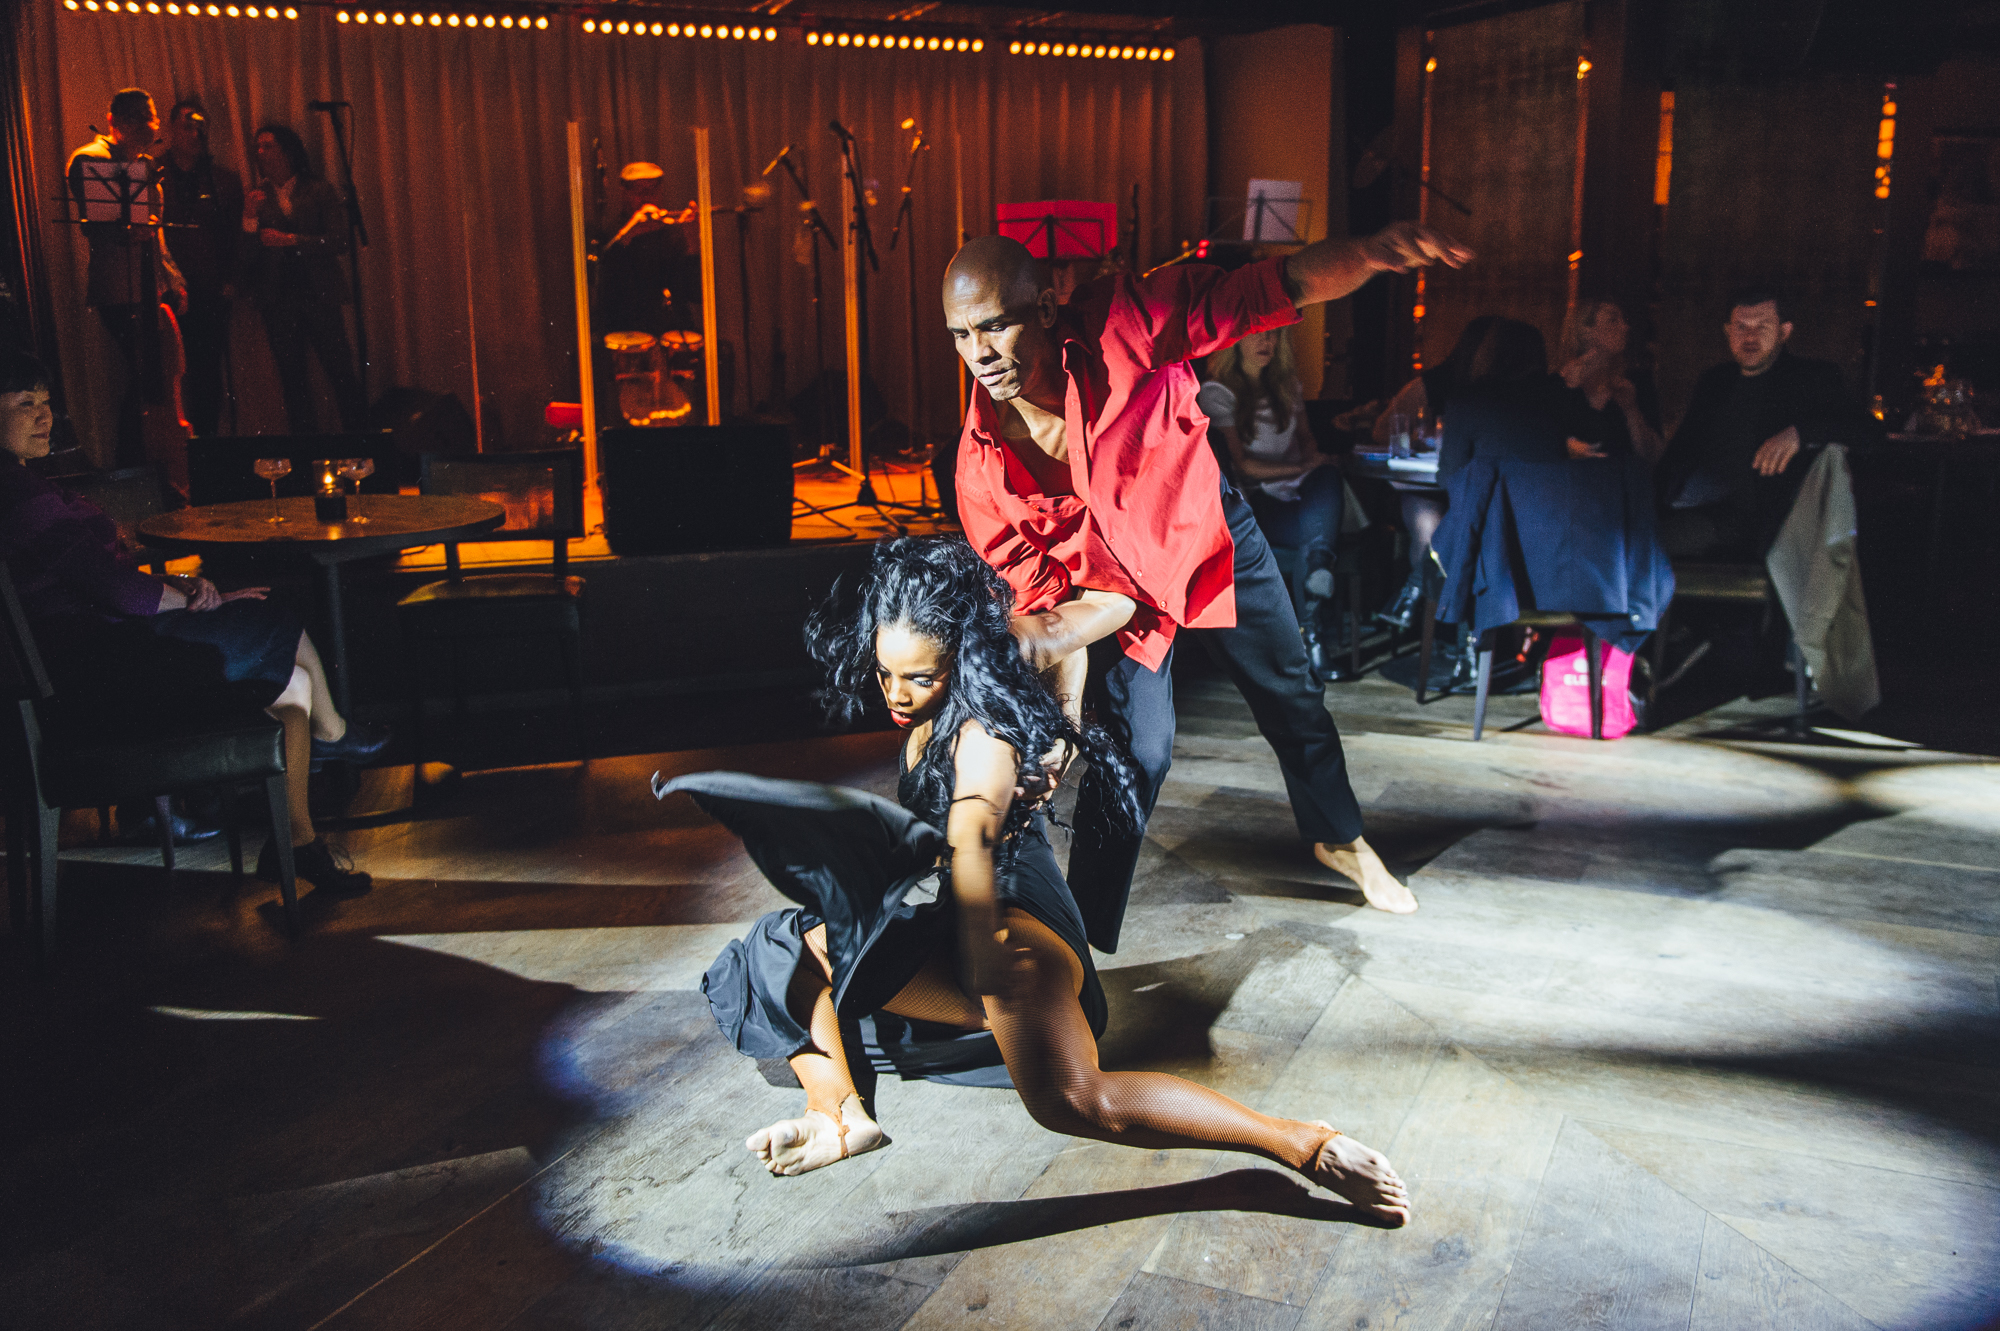 Dancers_Entertain_at_the_Latin_Fiesta_Launch_Party_at_100_Wardour_St[1].jpg